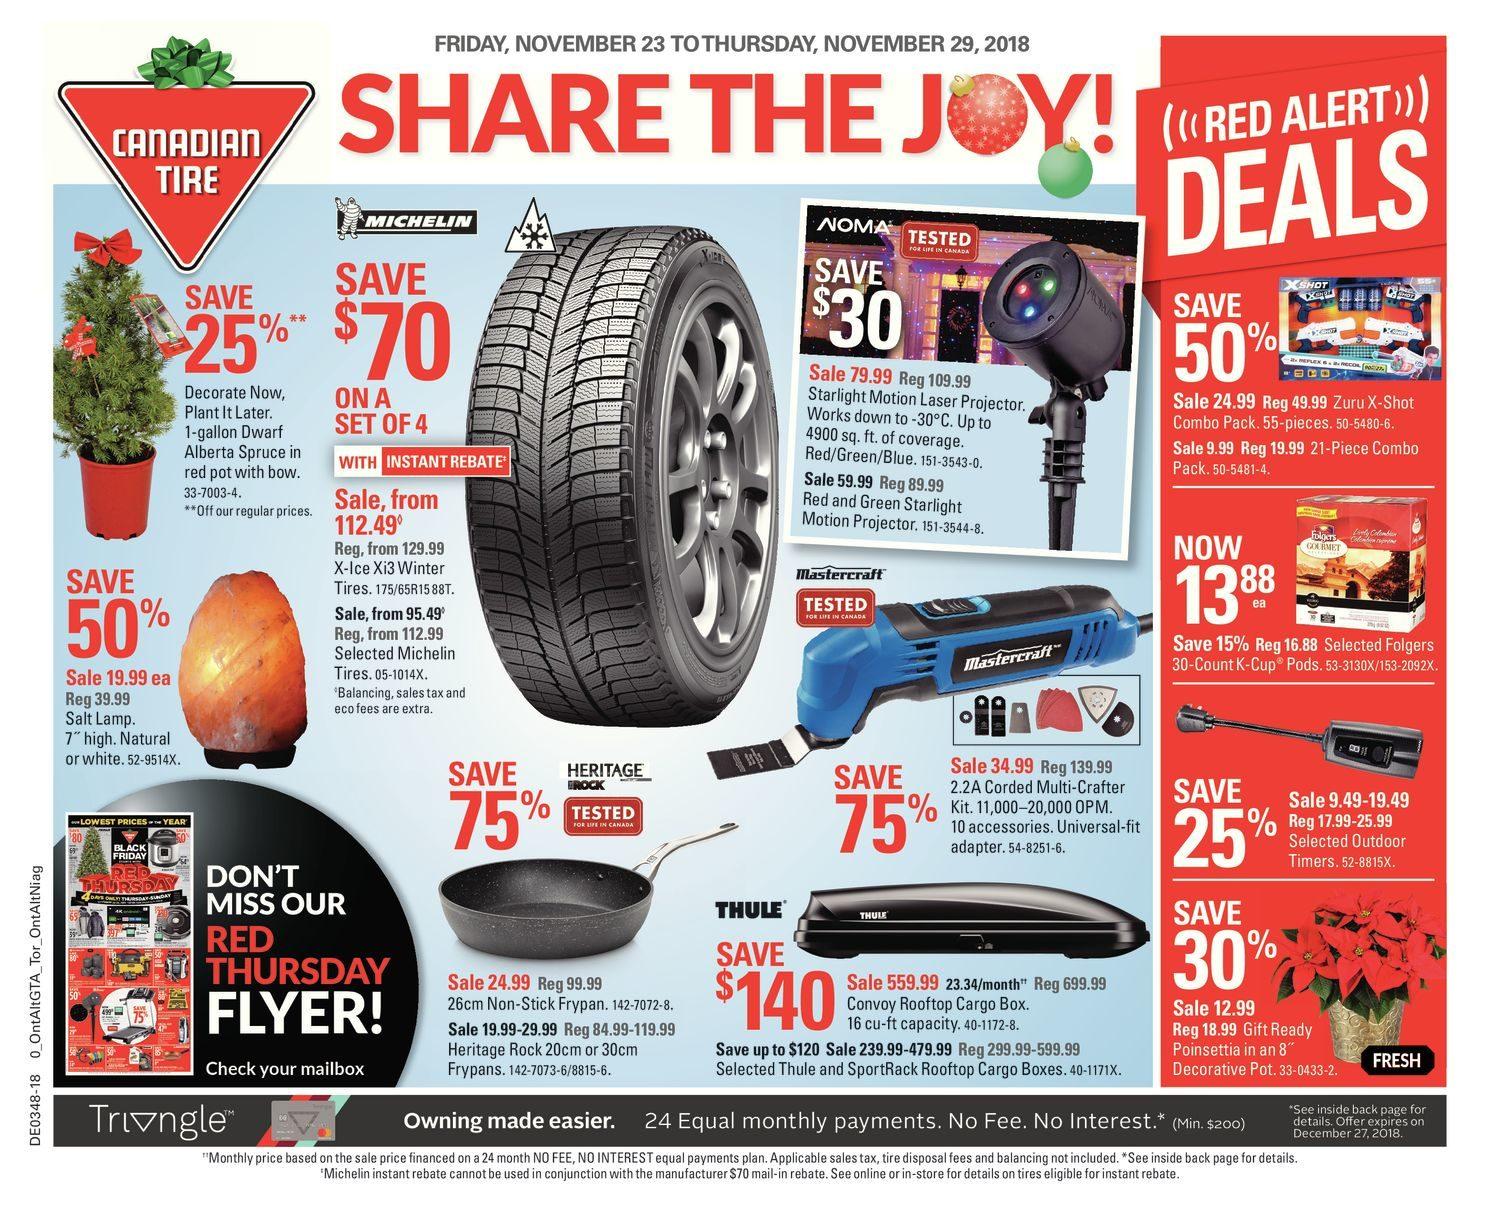 Canadian Tire Weekly Flyer Weekly Share The Joy Nov